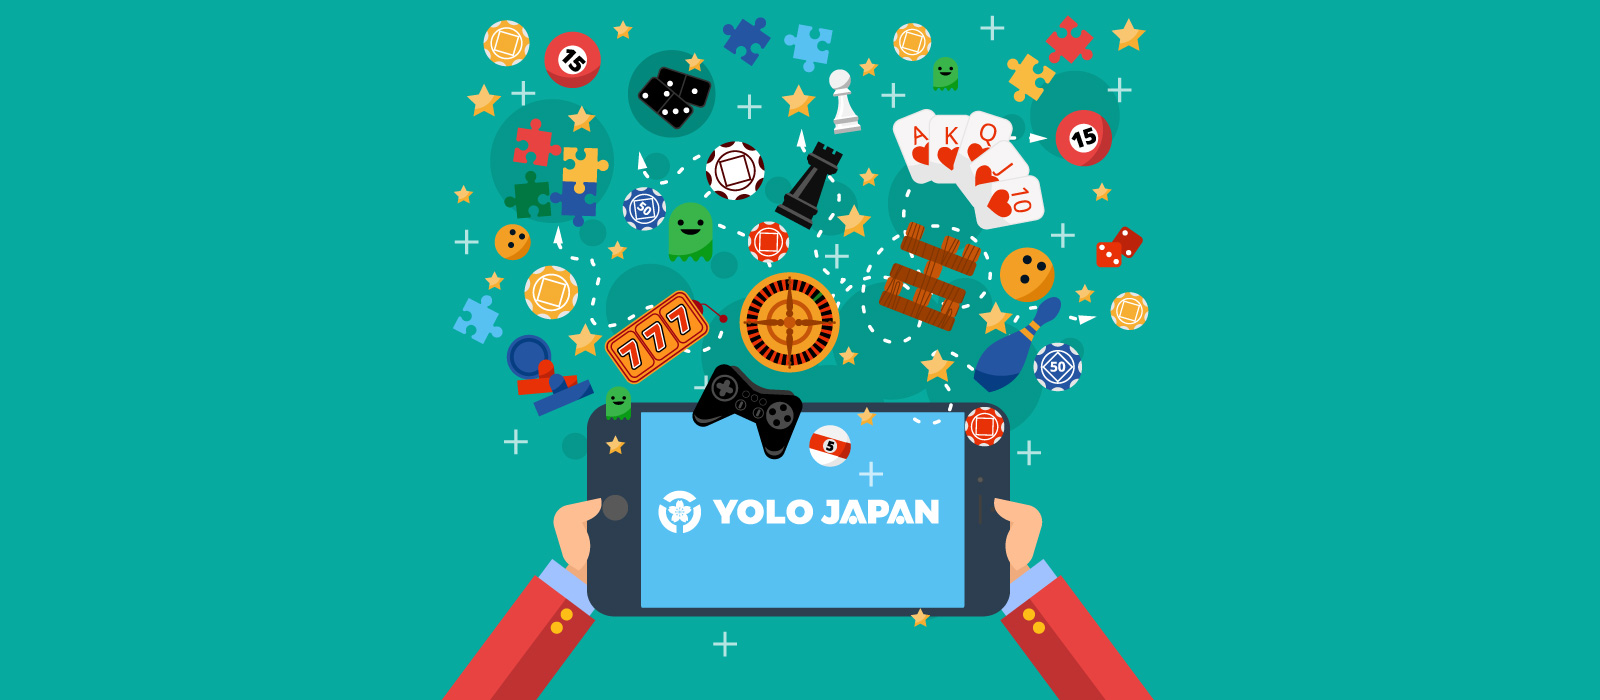 5 000 Referral Fee Female Phone Games Fans Wanted Jpy10 000 90min Survey Jobs In Japan For Foreign Nationals Yolo Japan